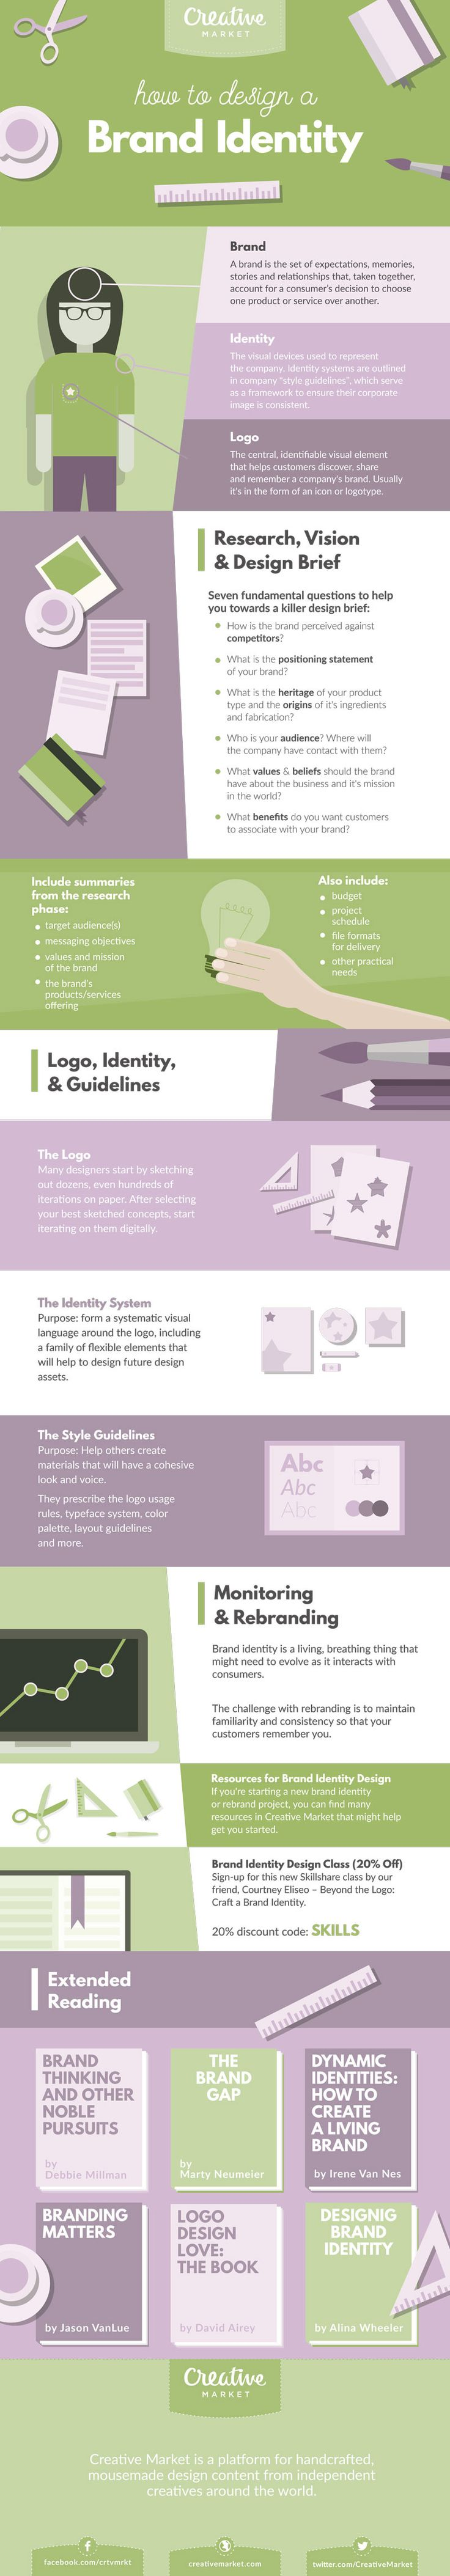 How to design a strong brand identity.